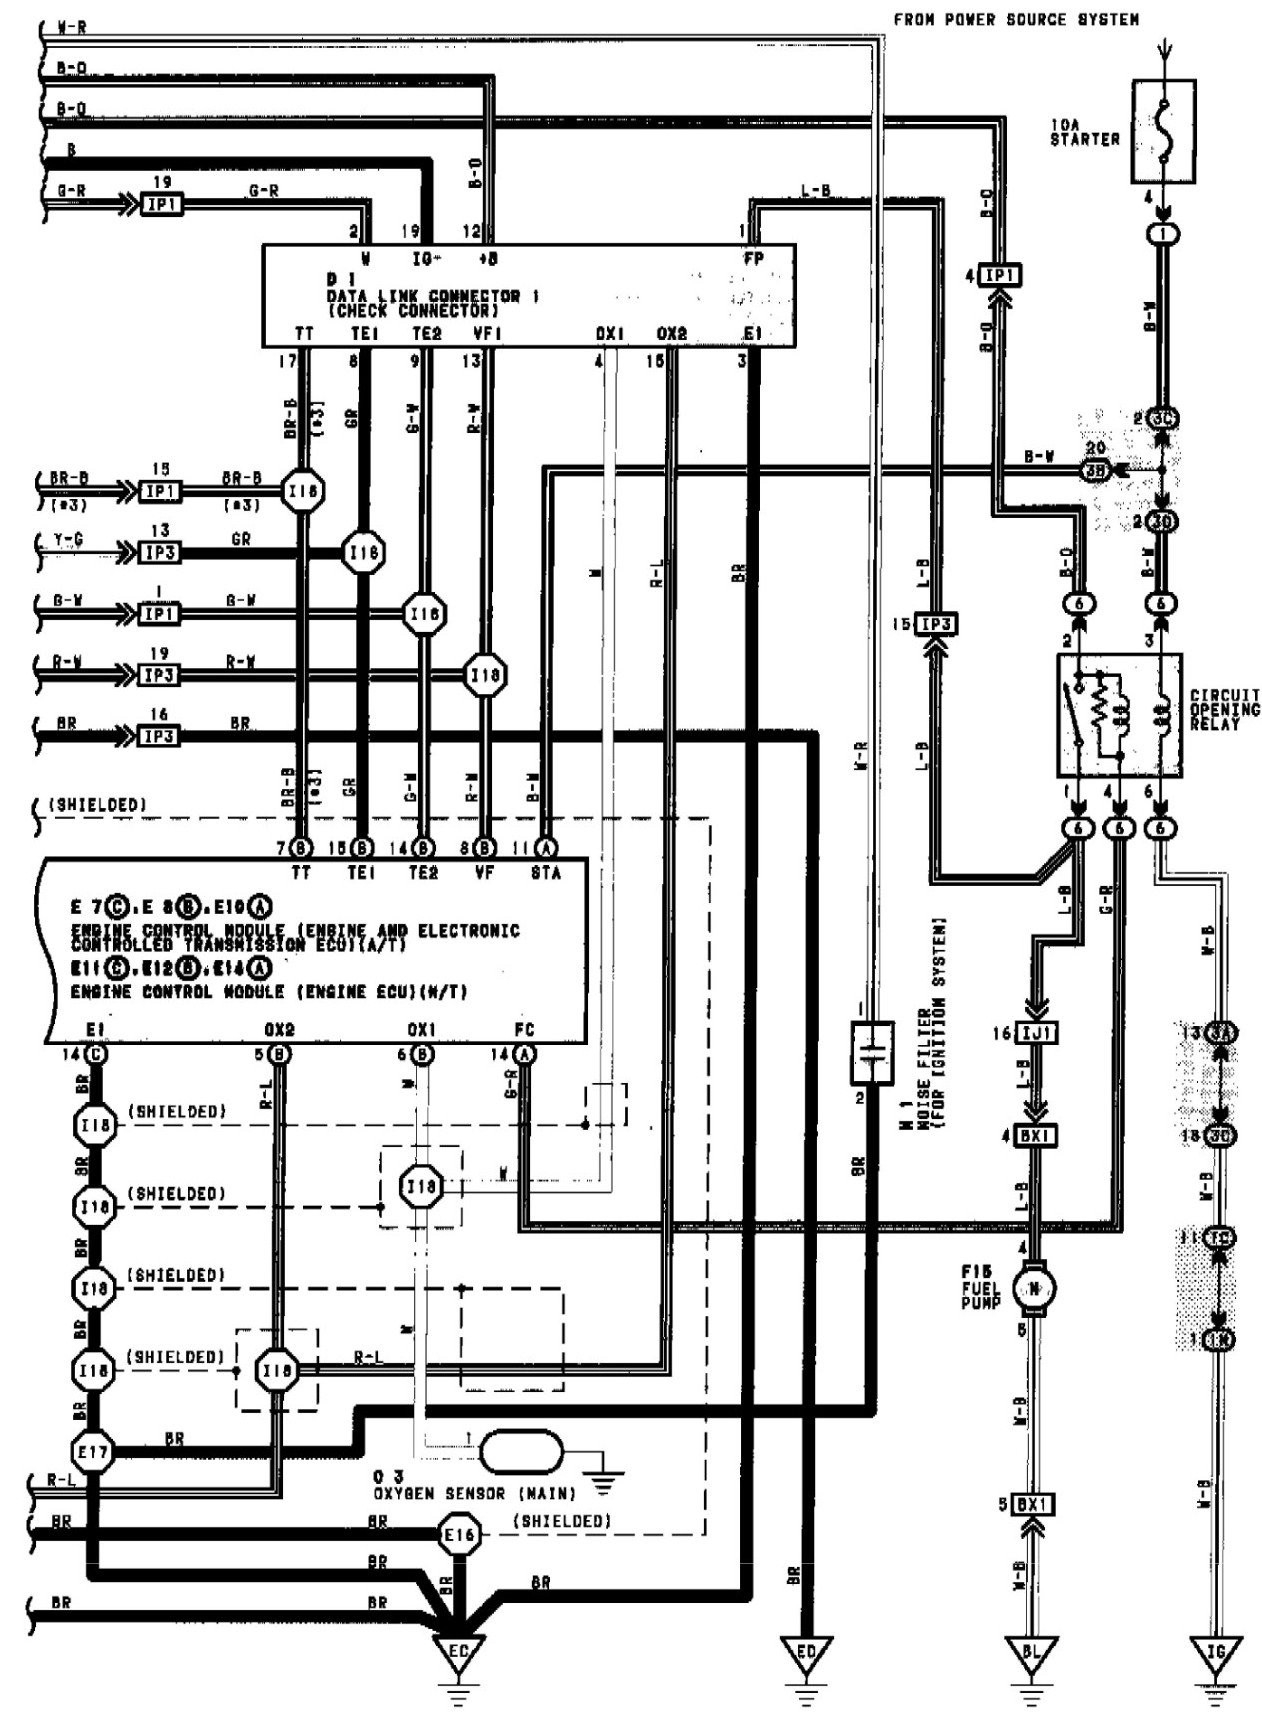 hight resolution of 94 toyota wiring diagram wiring diagram data today 1994 toyota wiring diagram 1994 toyota camry wiring